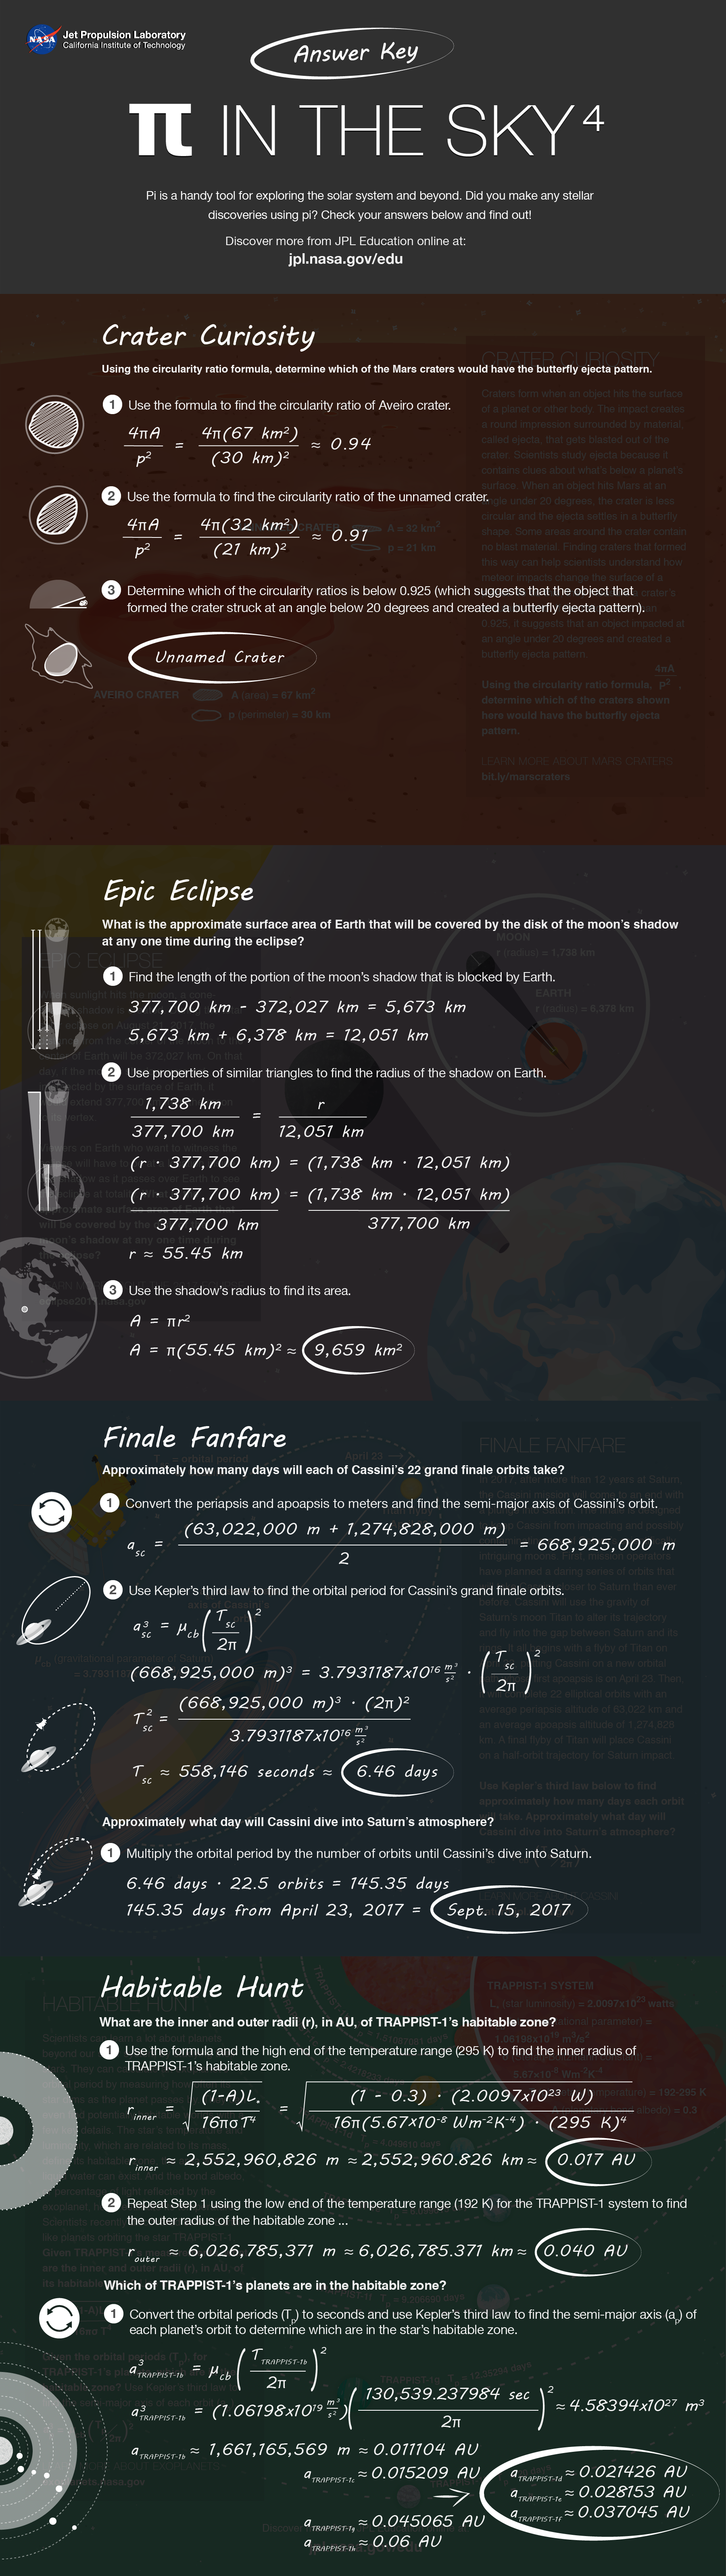 Pi in the Sky Infographic Answers